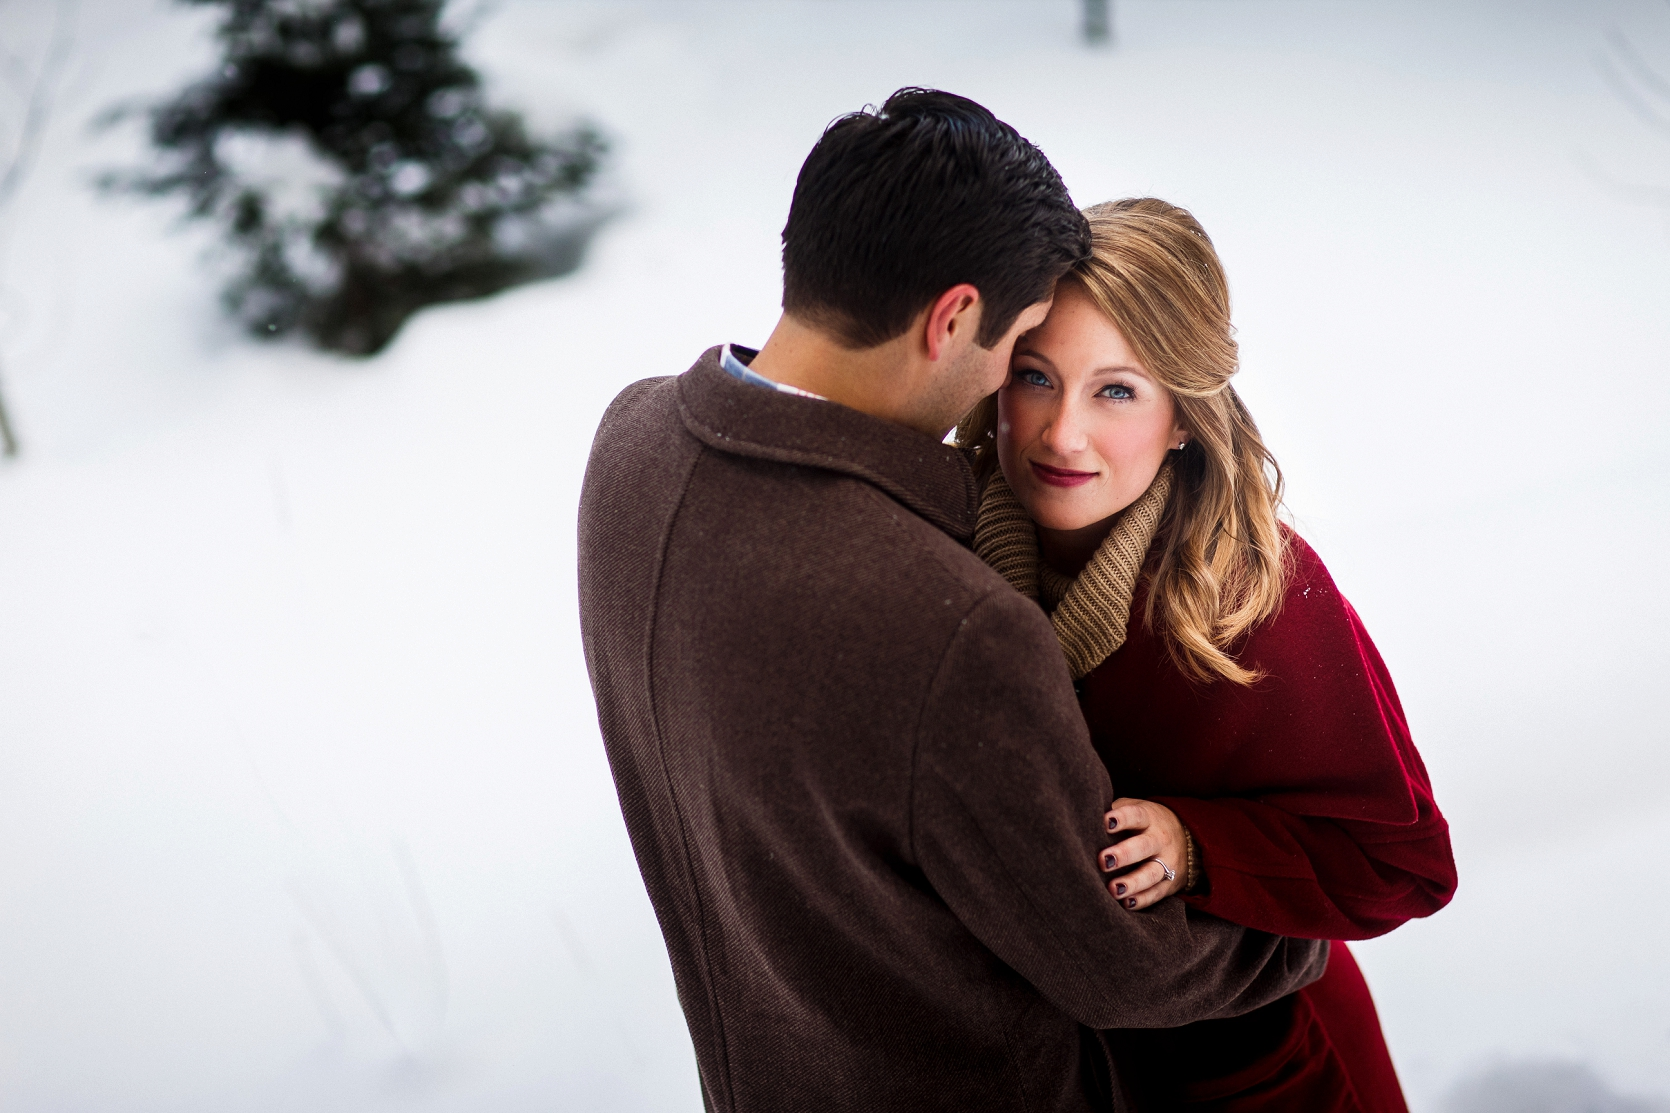 Winter_Vail_Engagement_0006